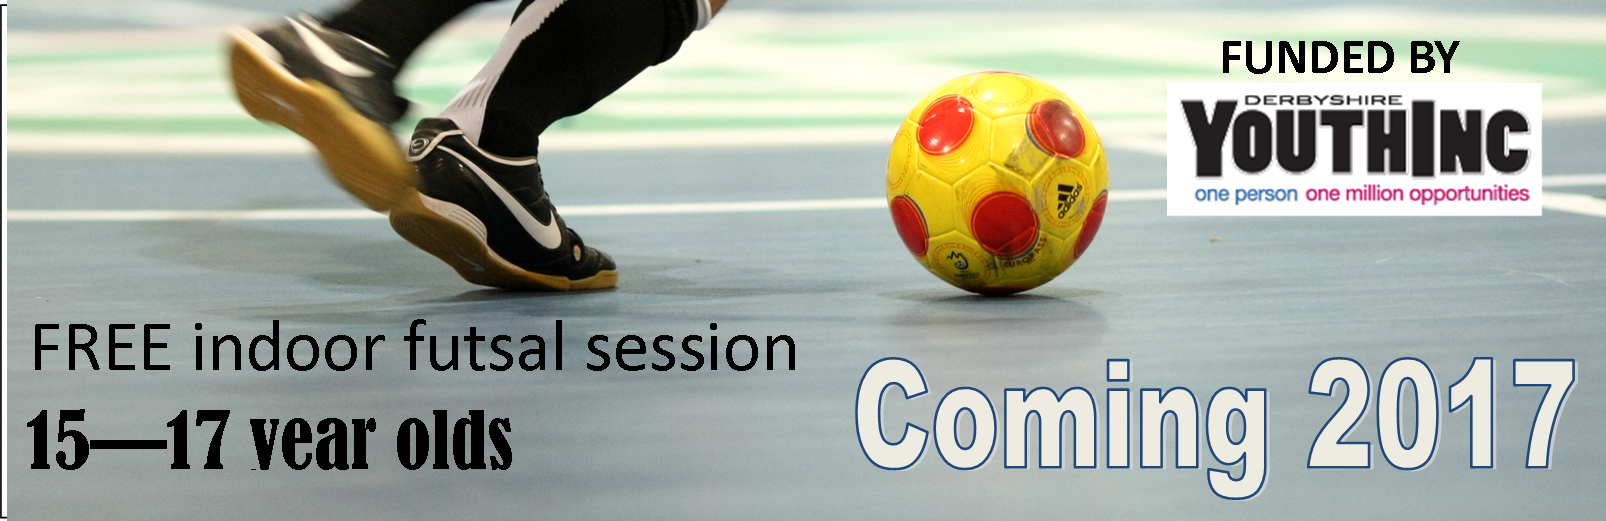 15-17 year old futsal session free